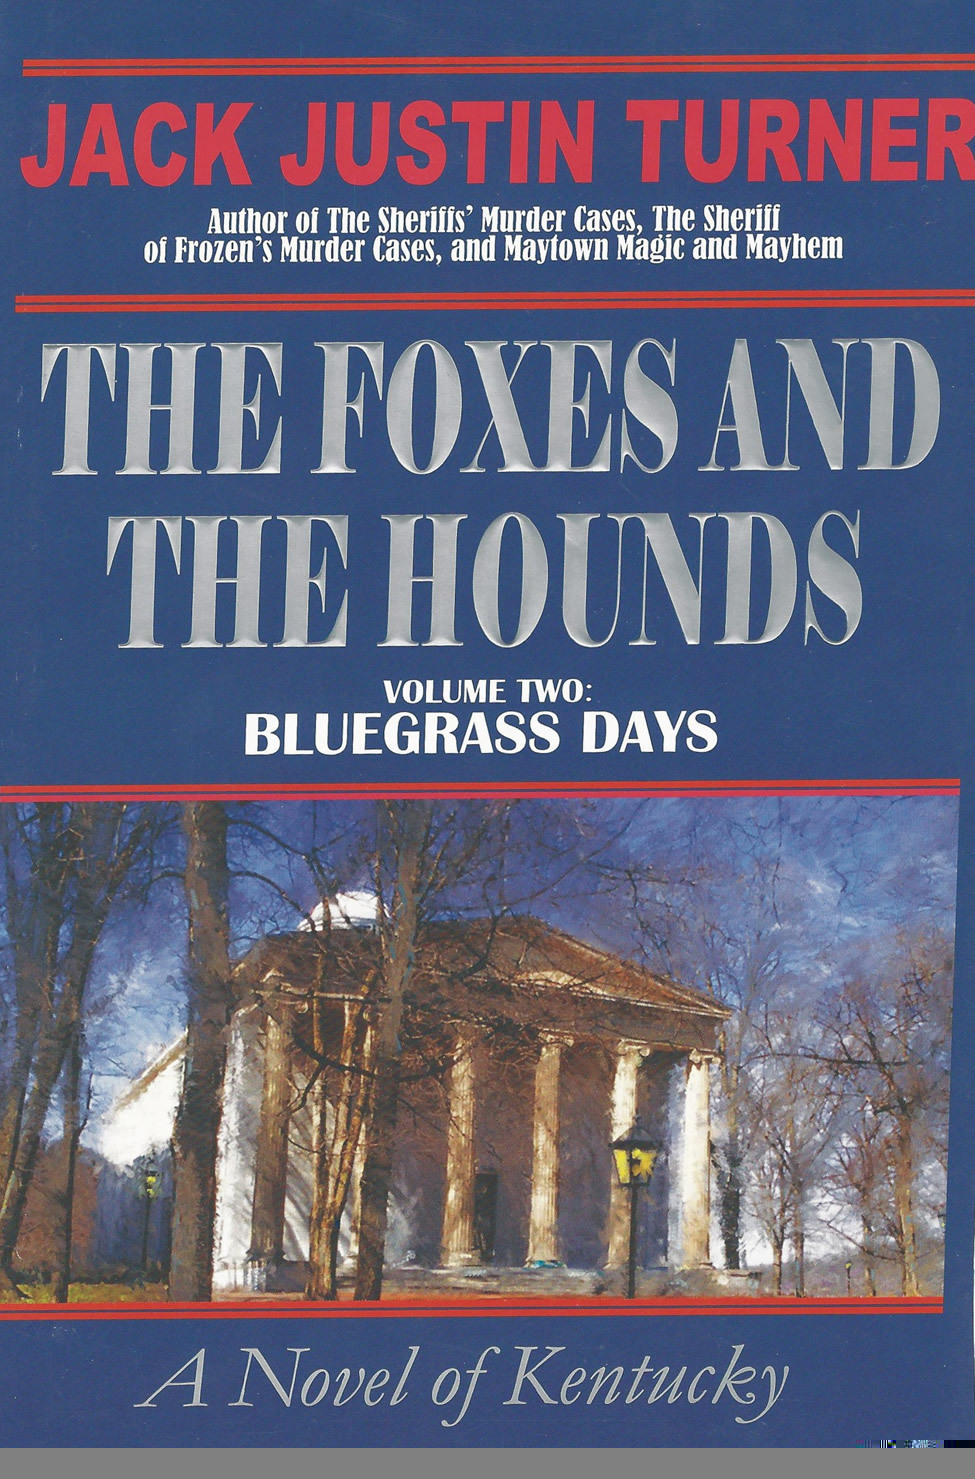 The Foxes and the Hounds - Volume Two: Bluegrass Days